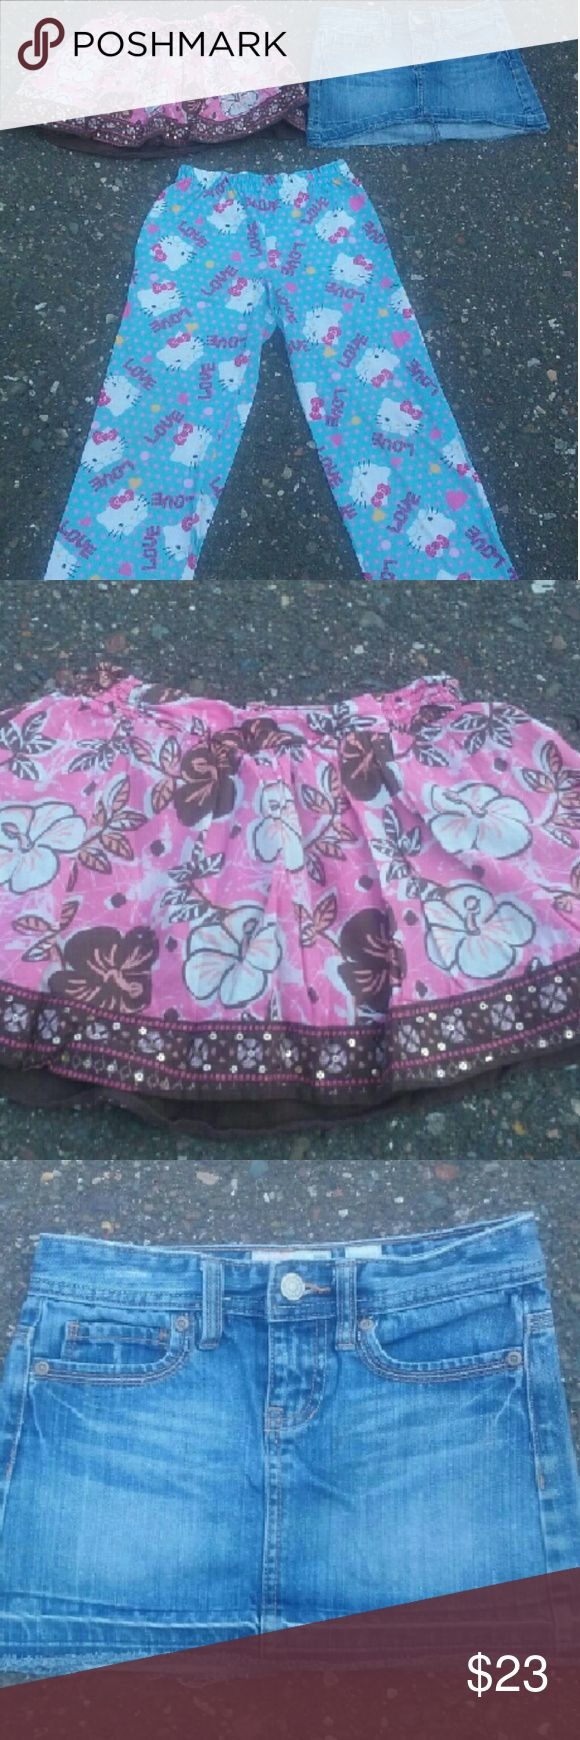 Girls clothing bundle . Hello Kitty pj's pants. Normal wear and tear but no stains and tears. Size 7/8.  . Old Navy denim skirt. Excellent condition. Size 7. . Justice skirt size 7. Stain in the front that blends in with the print. Has built in shorts. Other